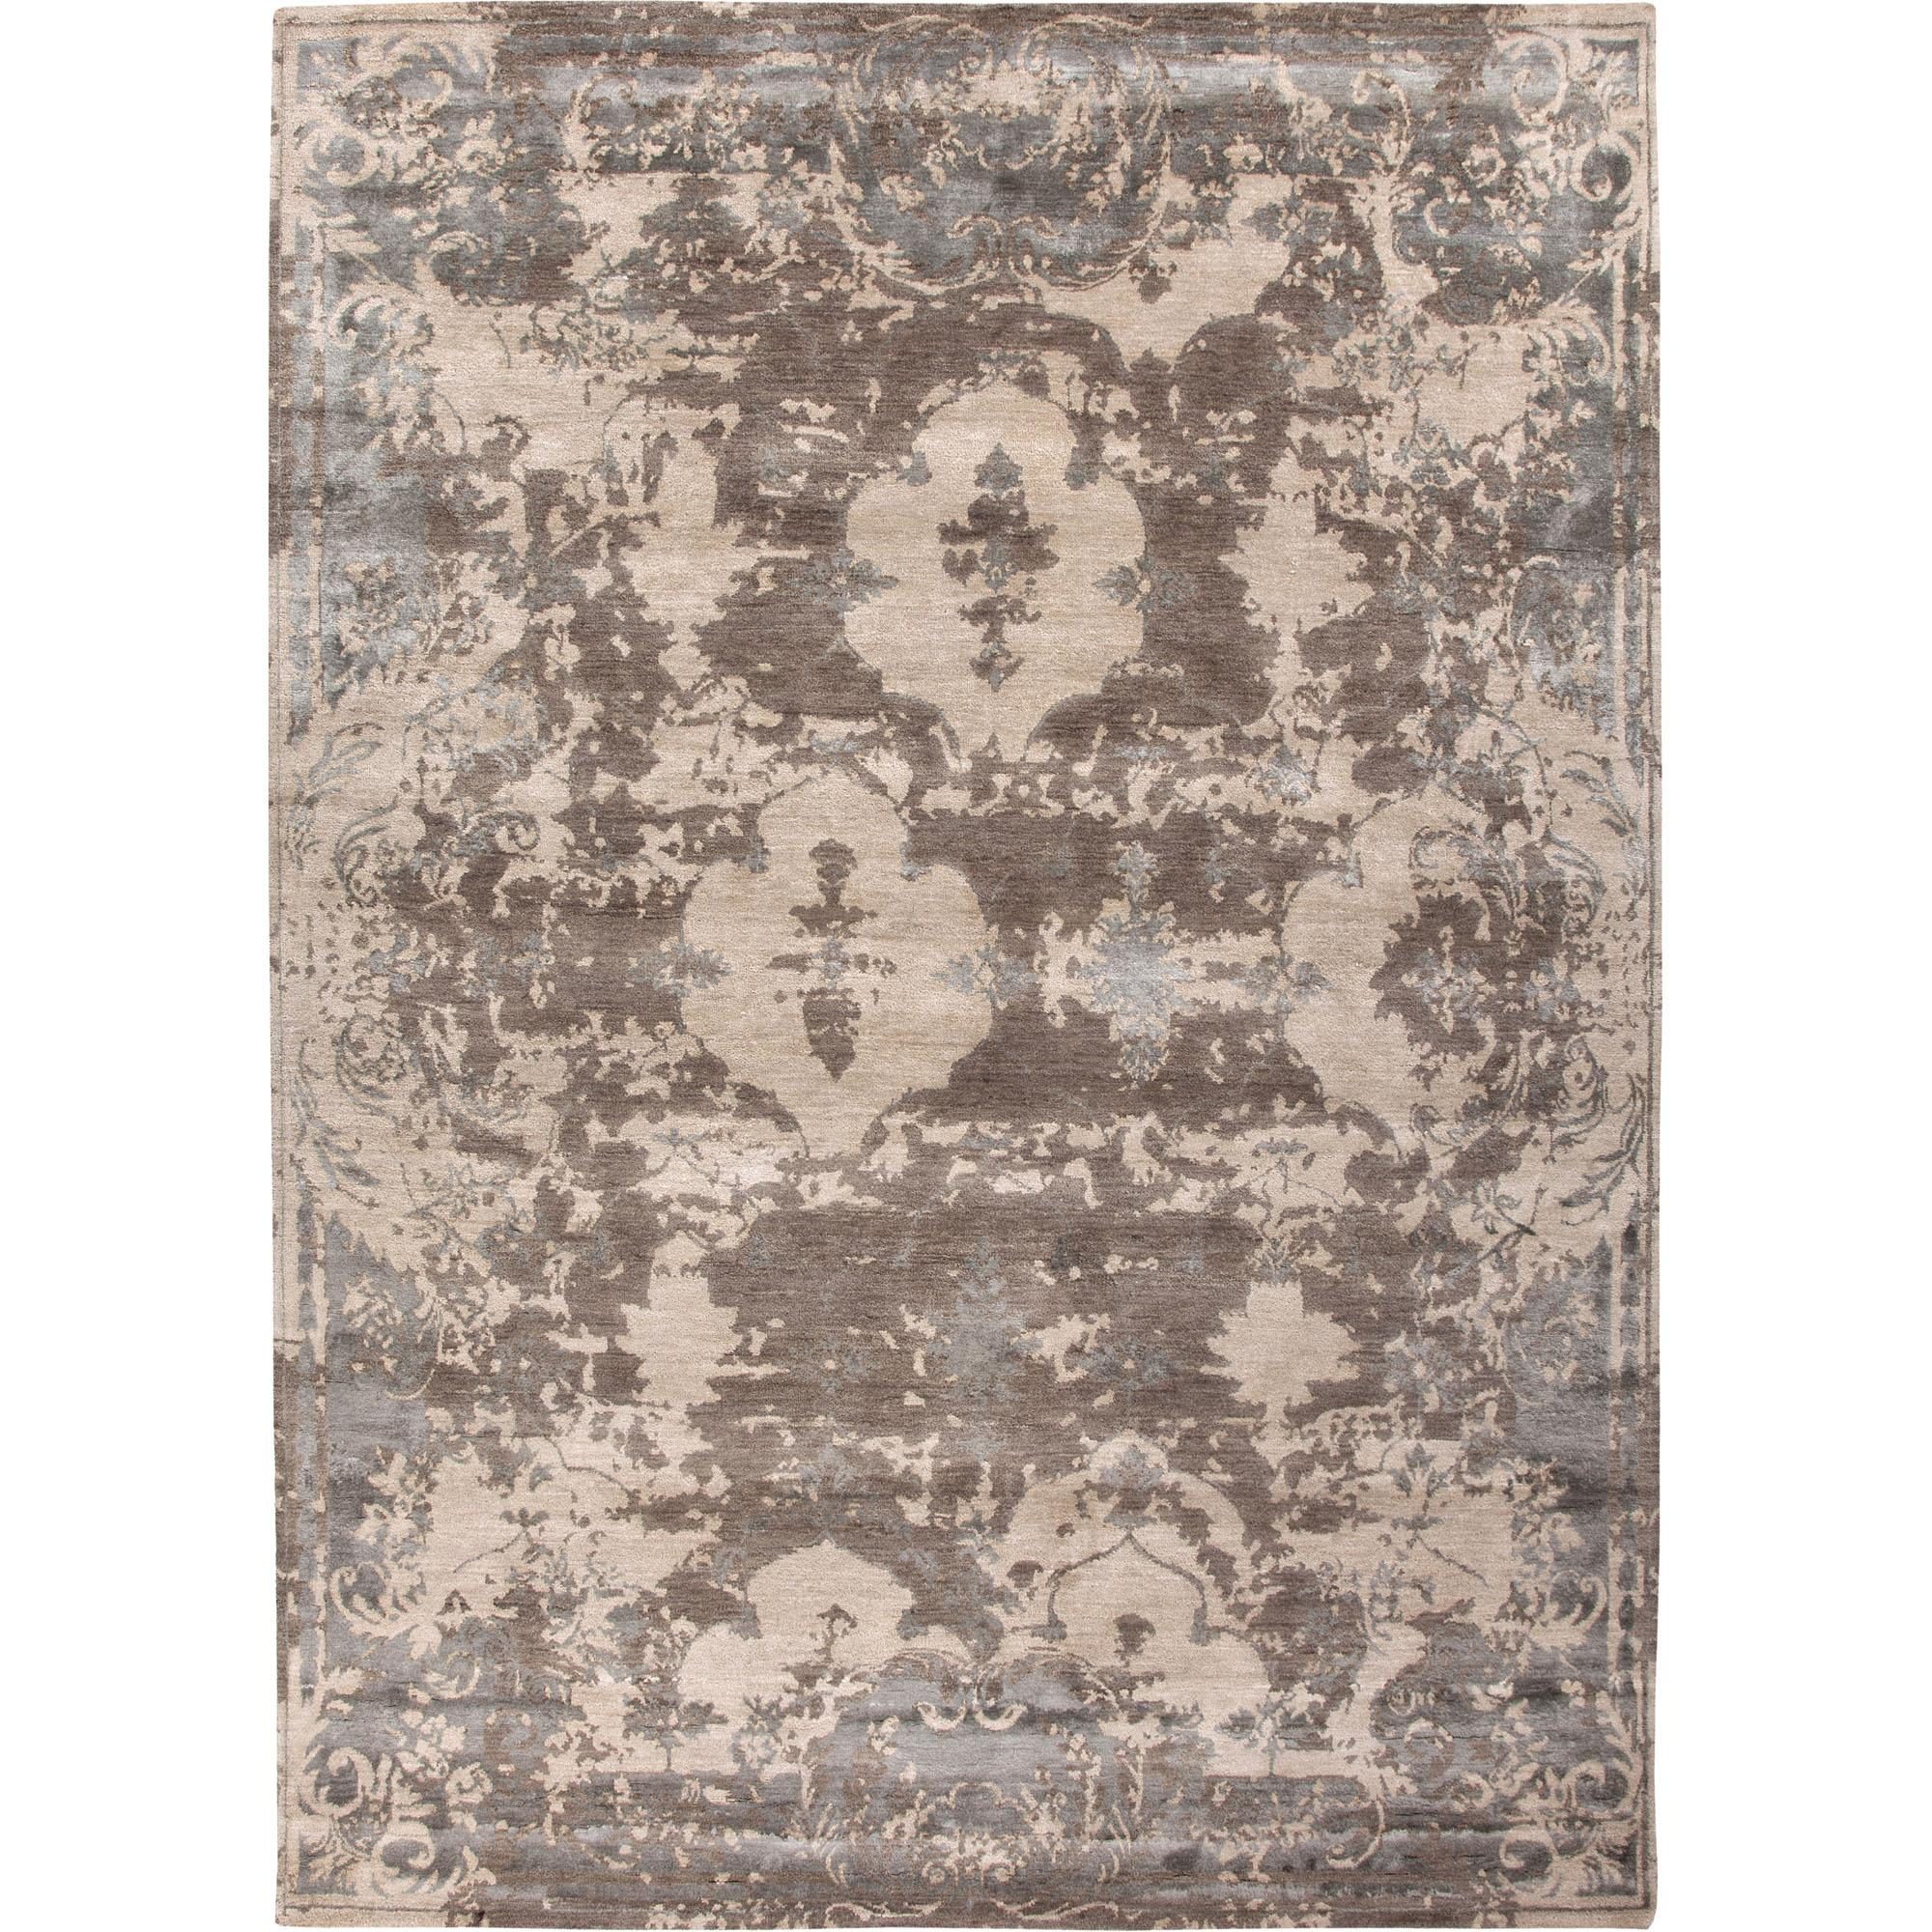 JAIPUR Rugs Connextion By Jenny Jones-global 5 x 8 Rug - Item Number: RUG101024